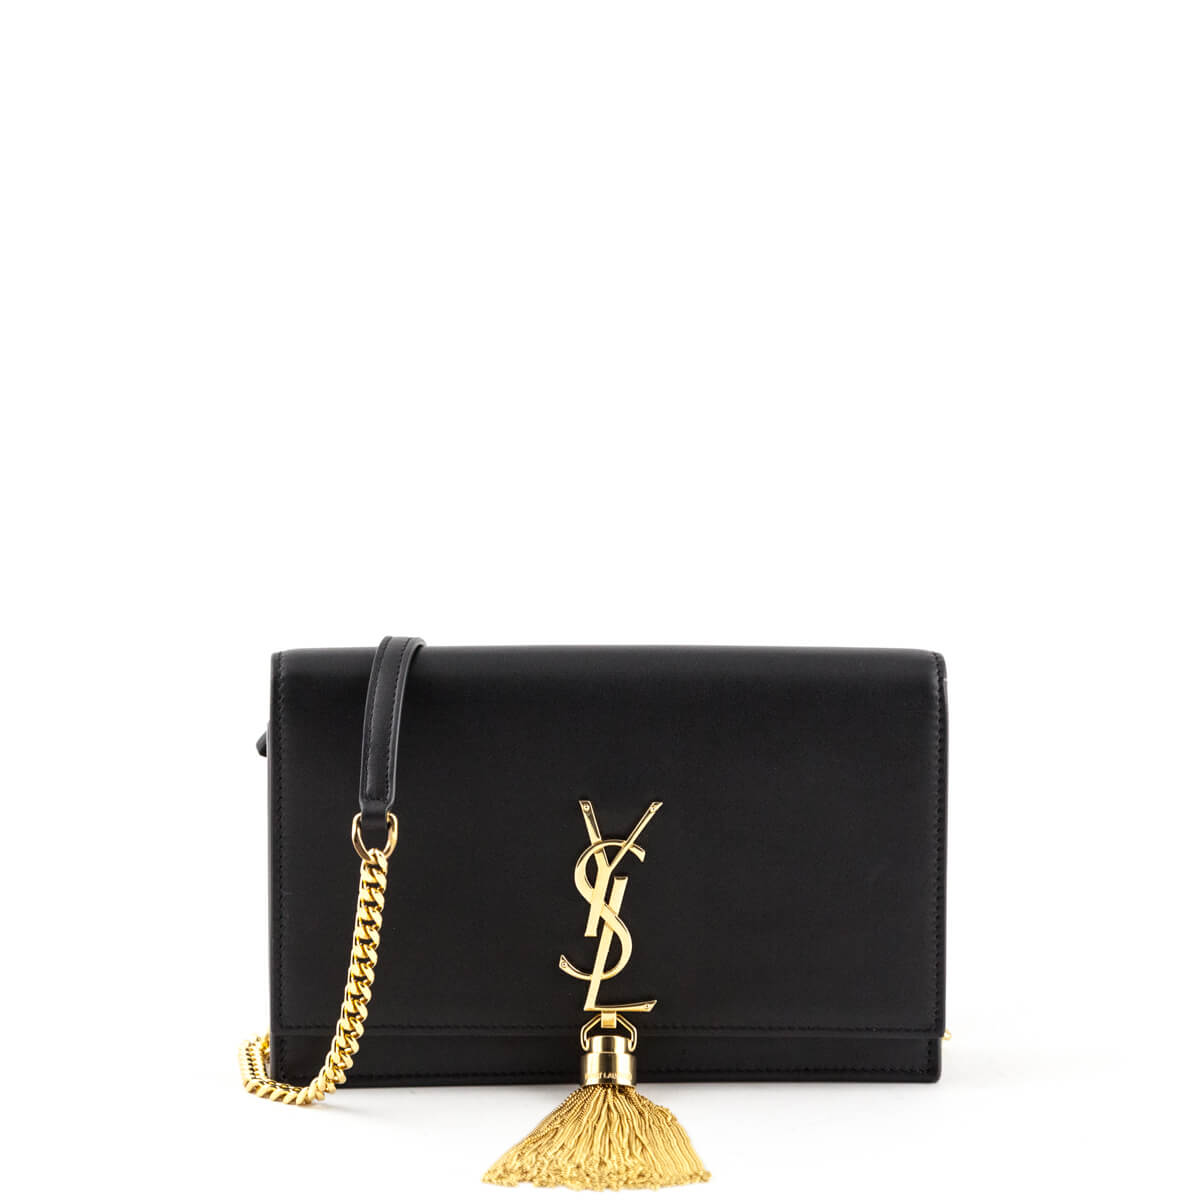 e56dd2ec3129 Saint Laurent Black Calfskin Kate Tassel Chain Wallet Bag - LOVE that BAG -  Preowned Authentic ...